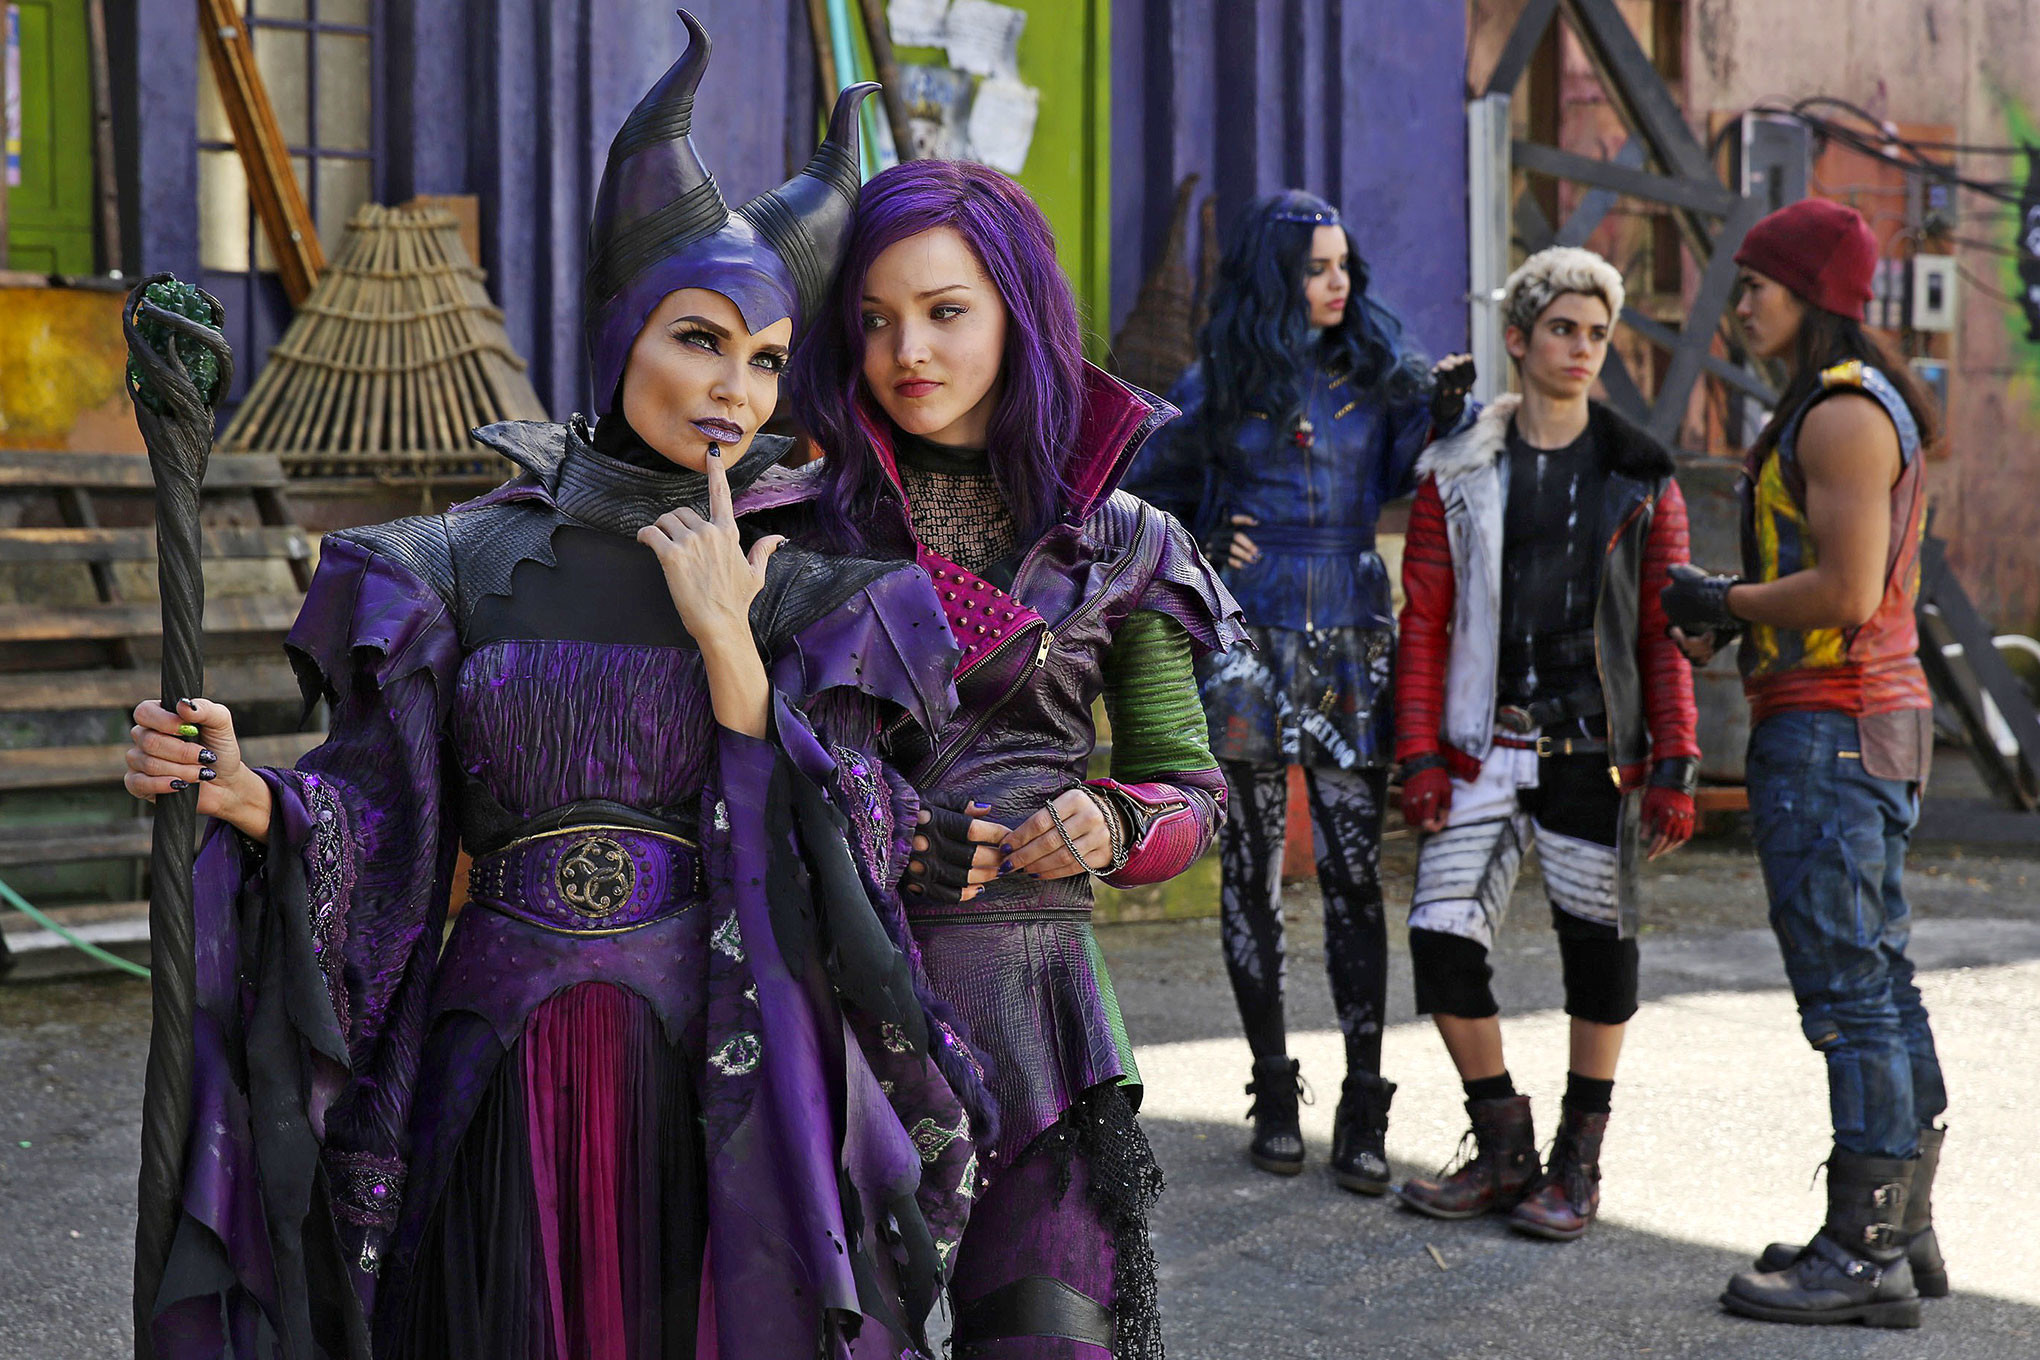 Descendants Disney Movie Wallpaper 70 images